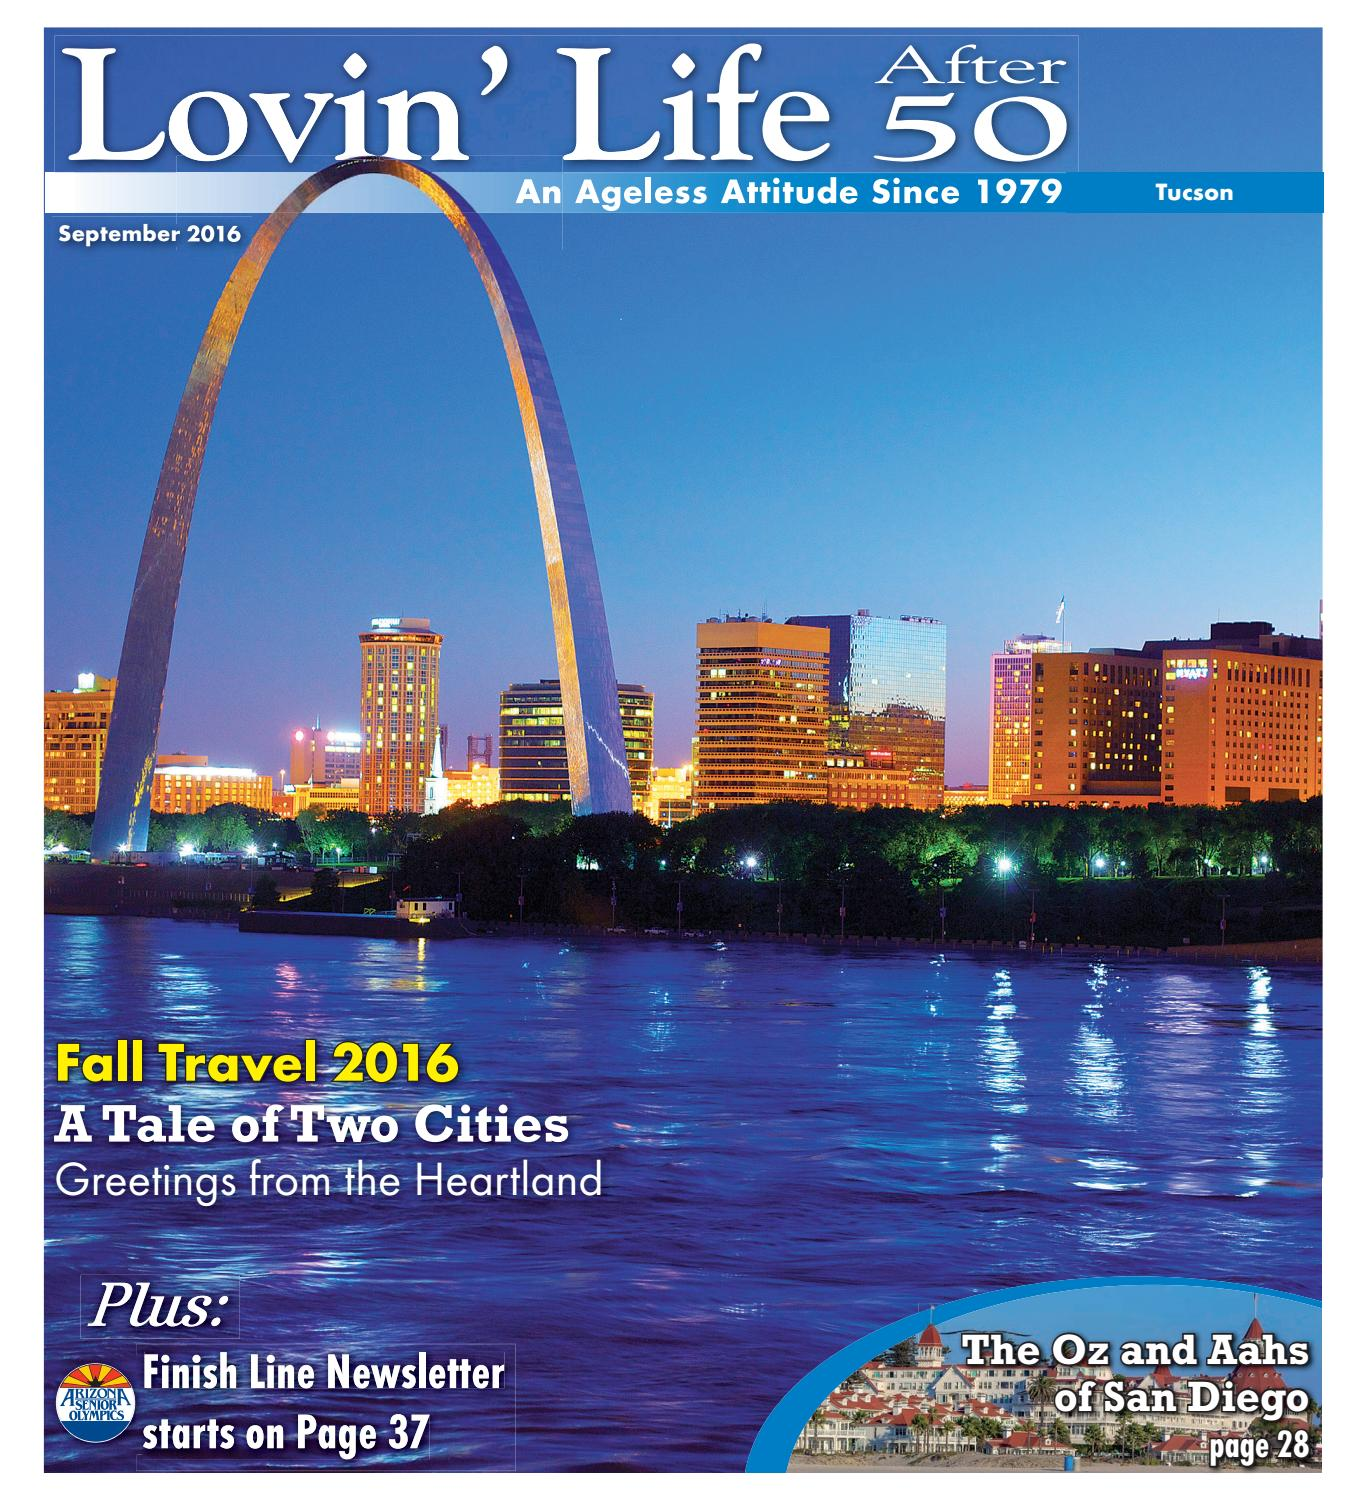 Lovin Life After 50 Tucson Sept 2016 by Times Media Group issuu